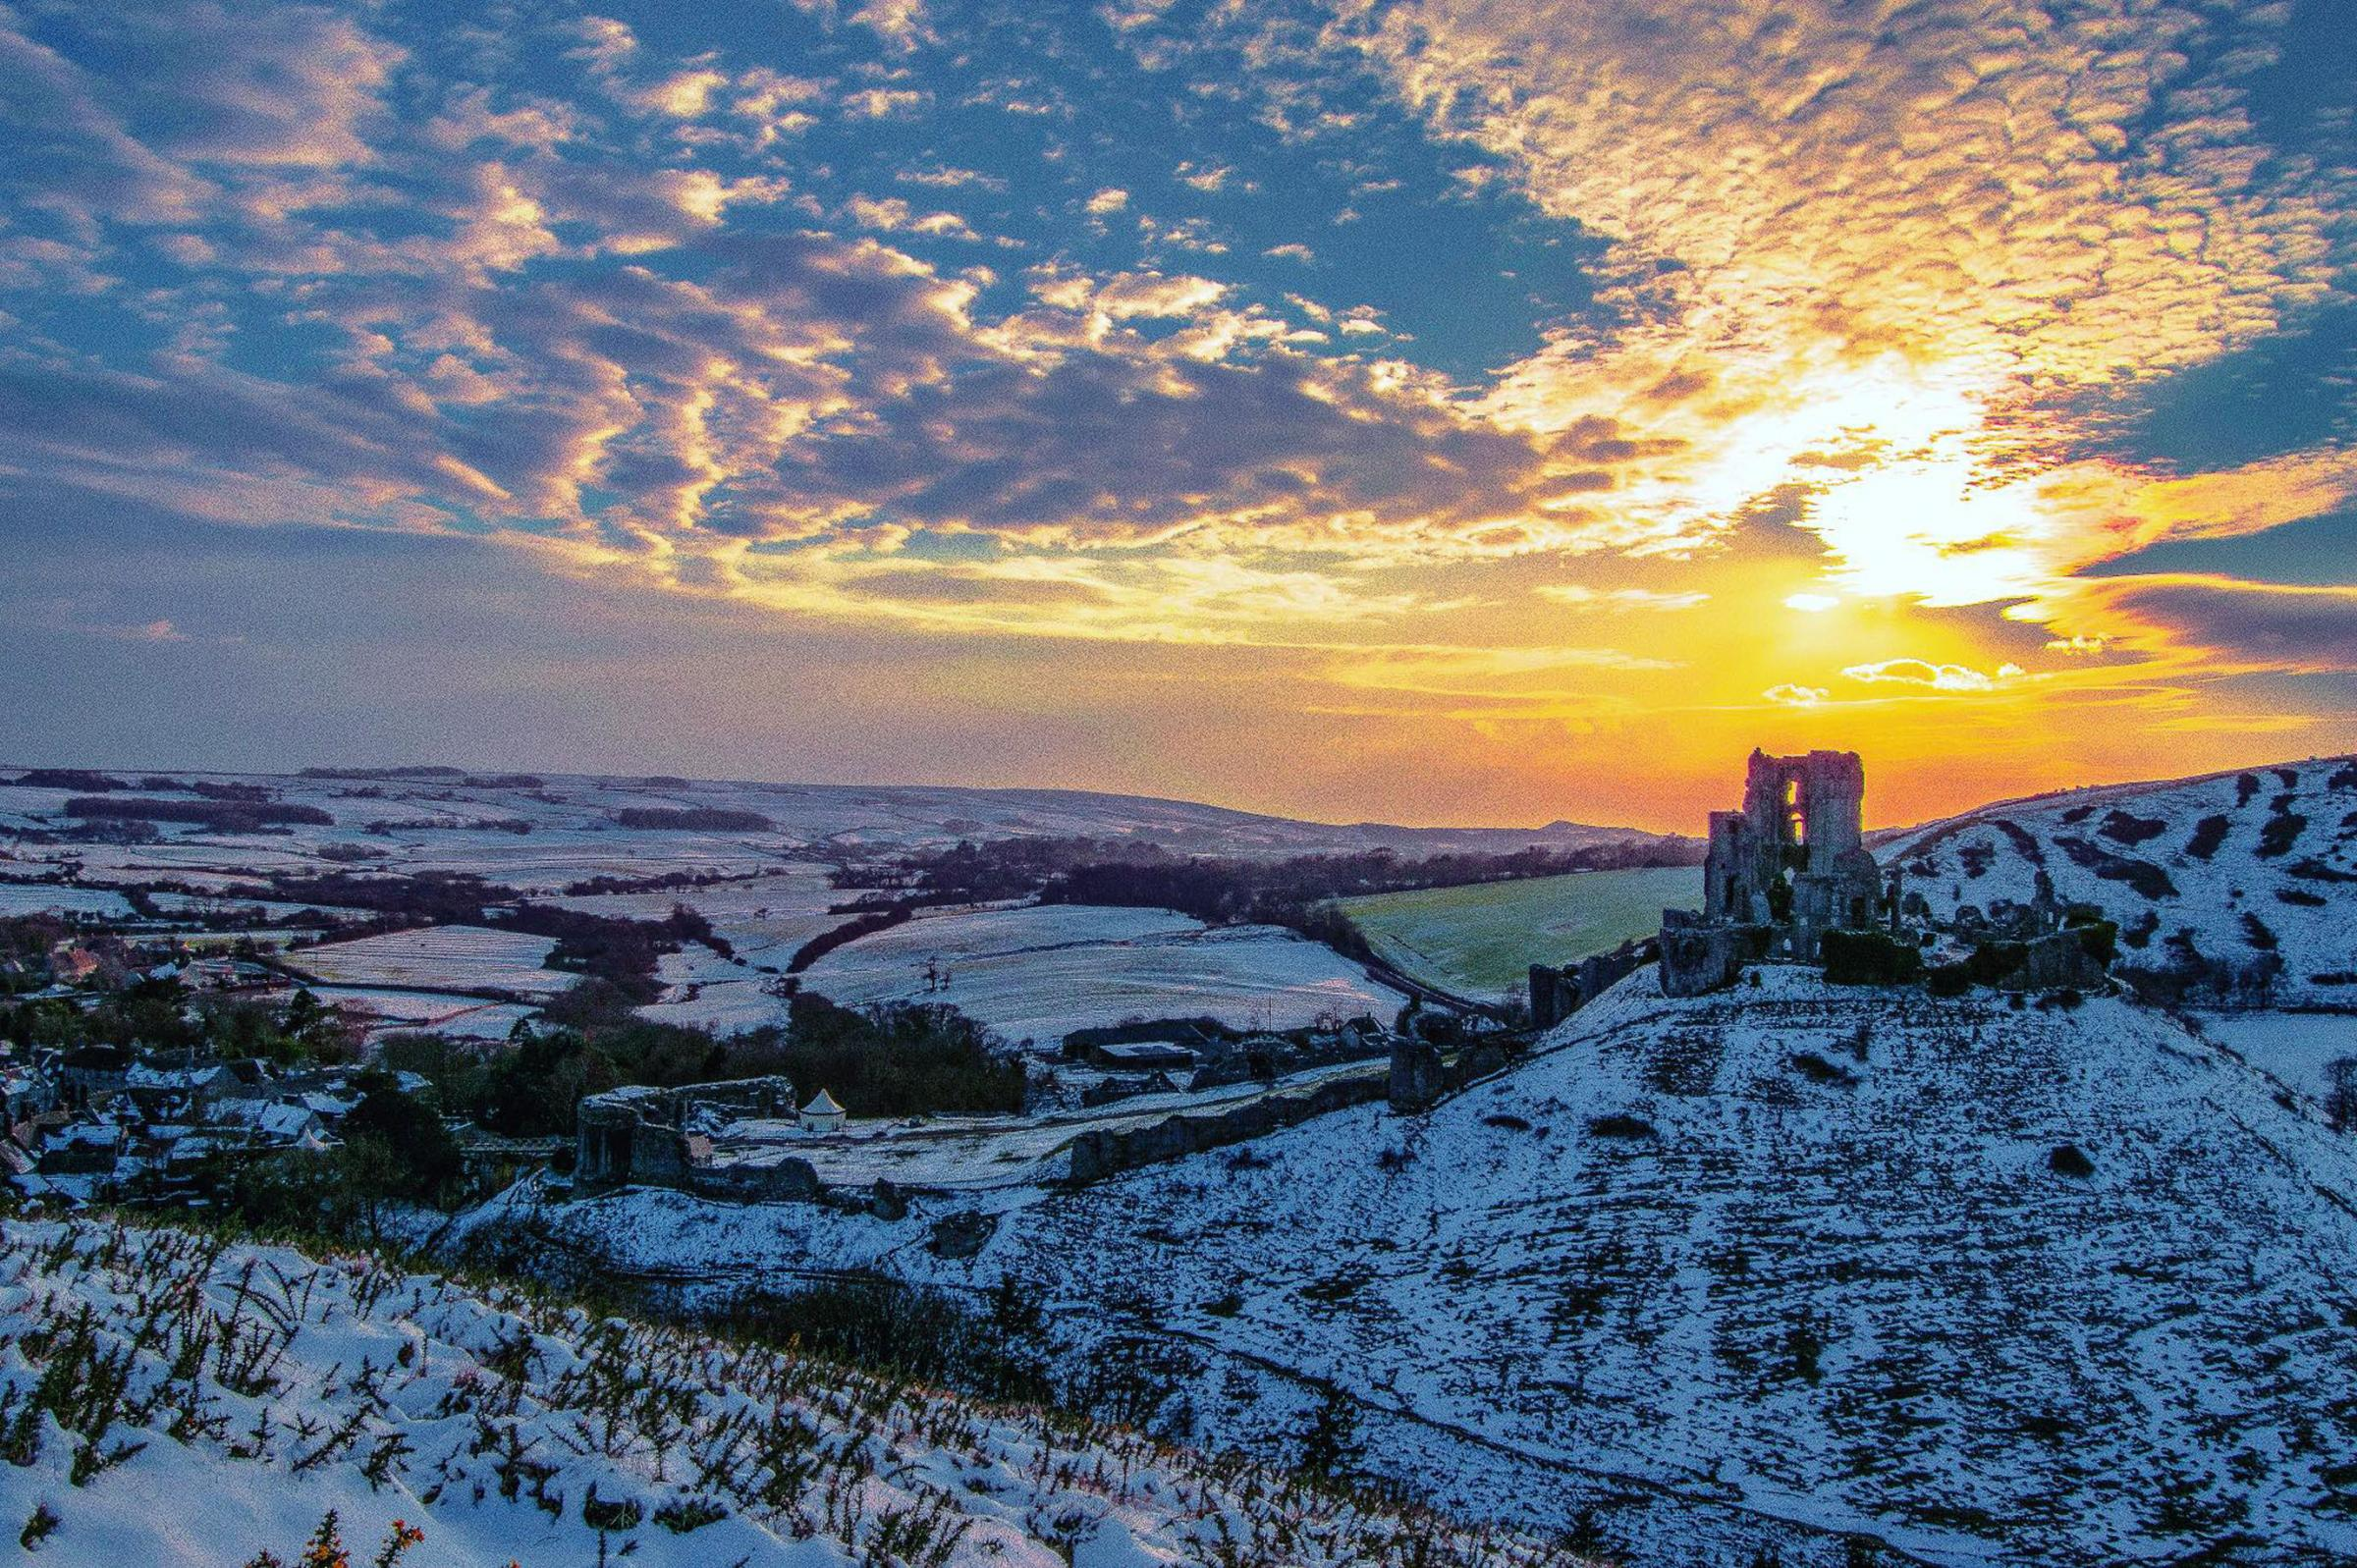 The sun sets over a snow covered Corfe Castle in Purbeck taken by Echo Camera Club member Joanna Louise